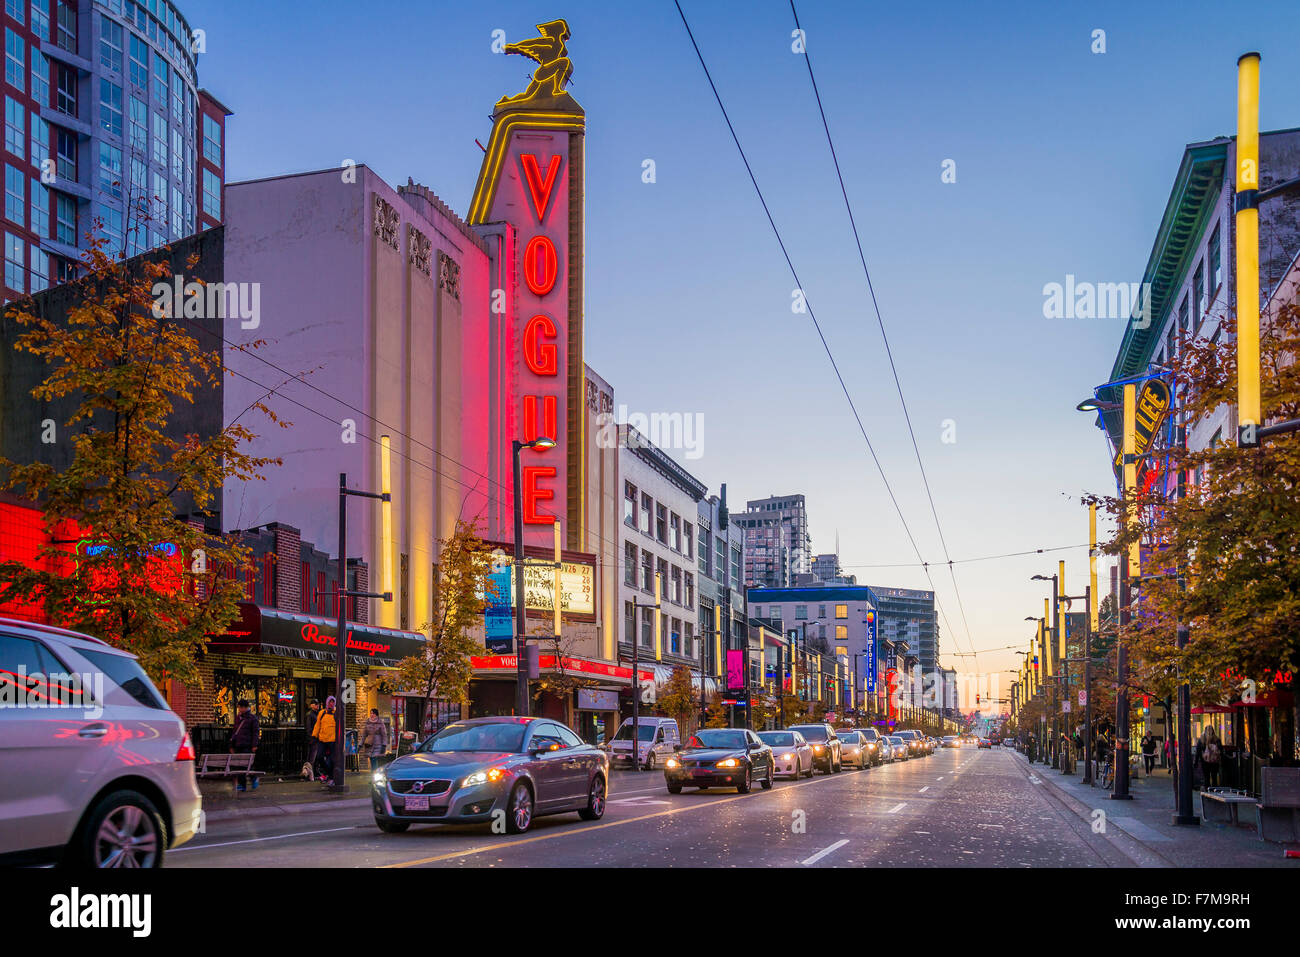 Vogue Theatre, Granville Street, Vancouver, British Columbia, Canada, Photo Stock